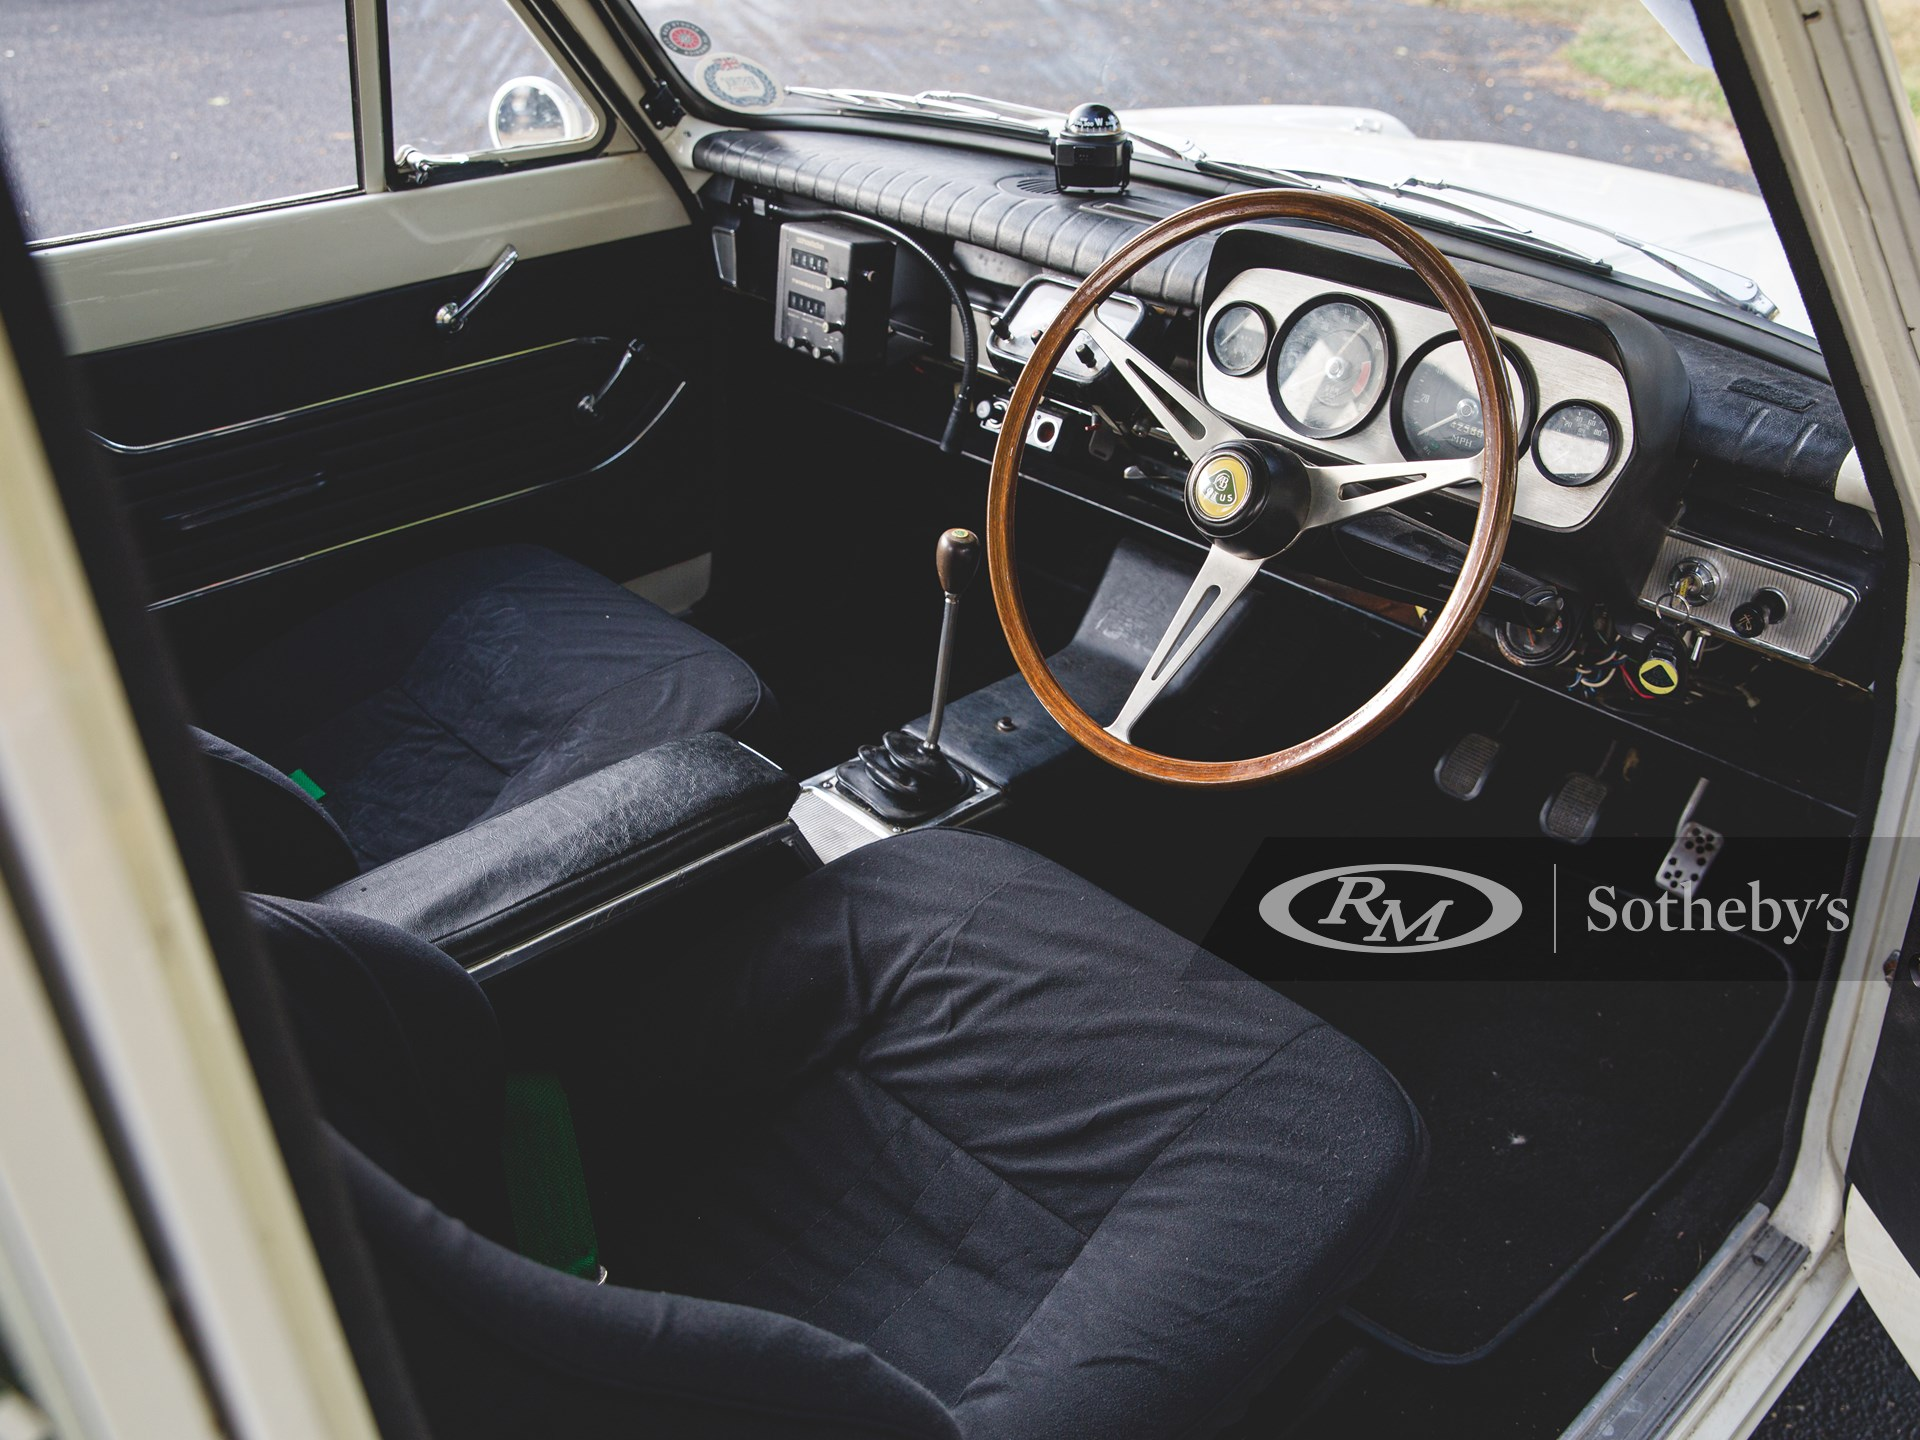 1967 Ford Cortina Lotus Mk 1 Rally Car  -